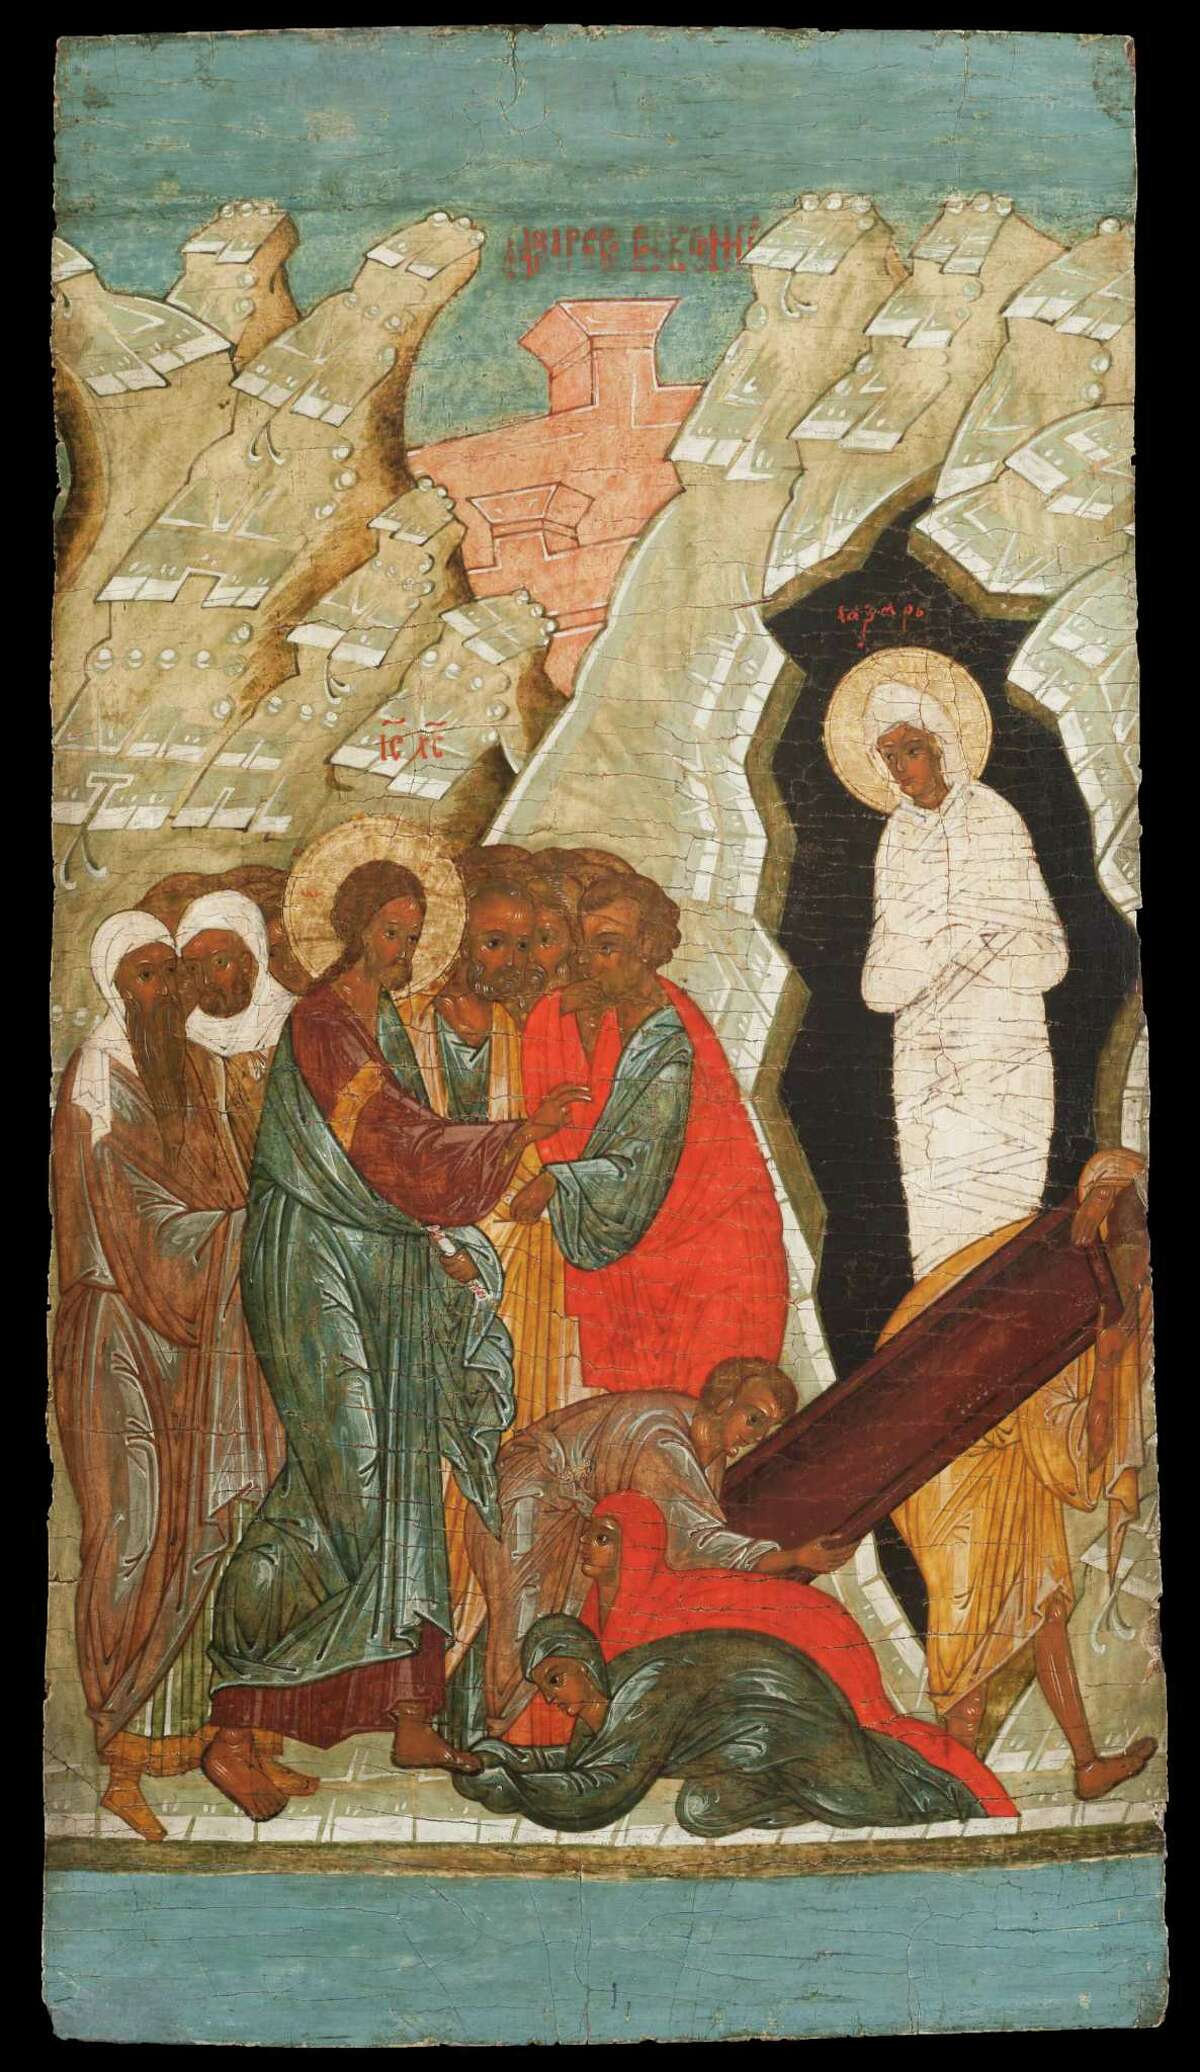 One redesigned gallery will showcase Byzantine and Post-Byzantine treasures such as